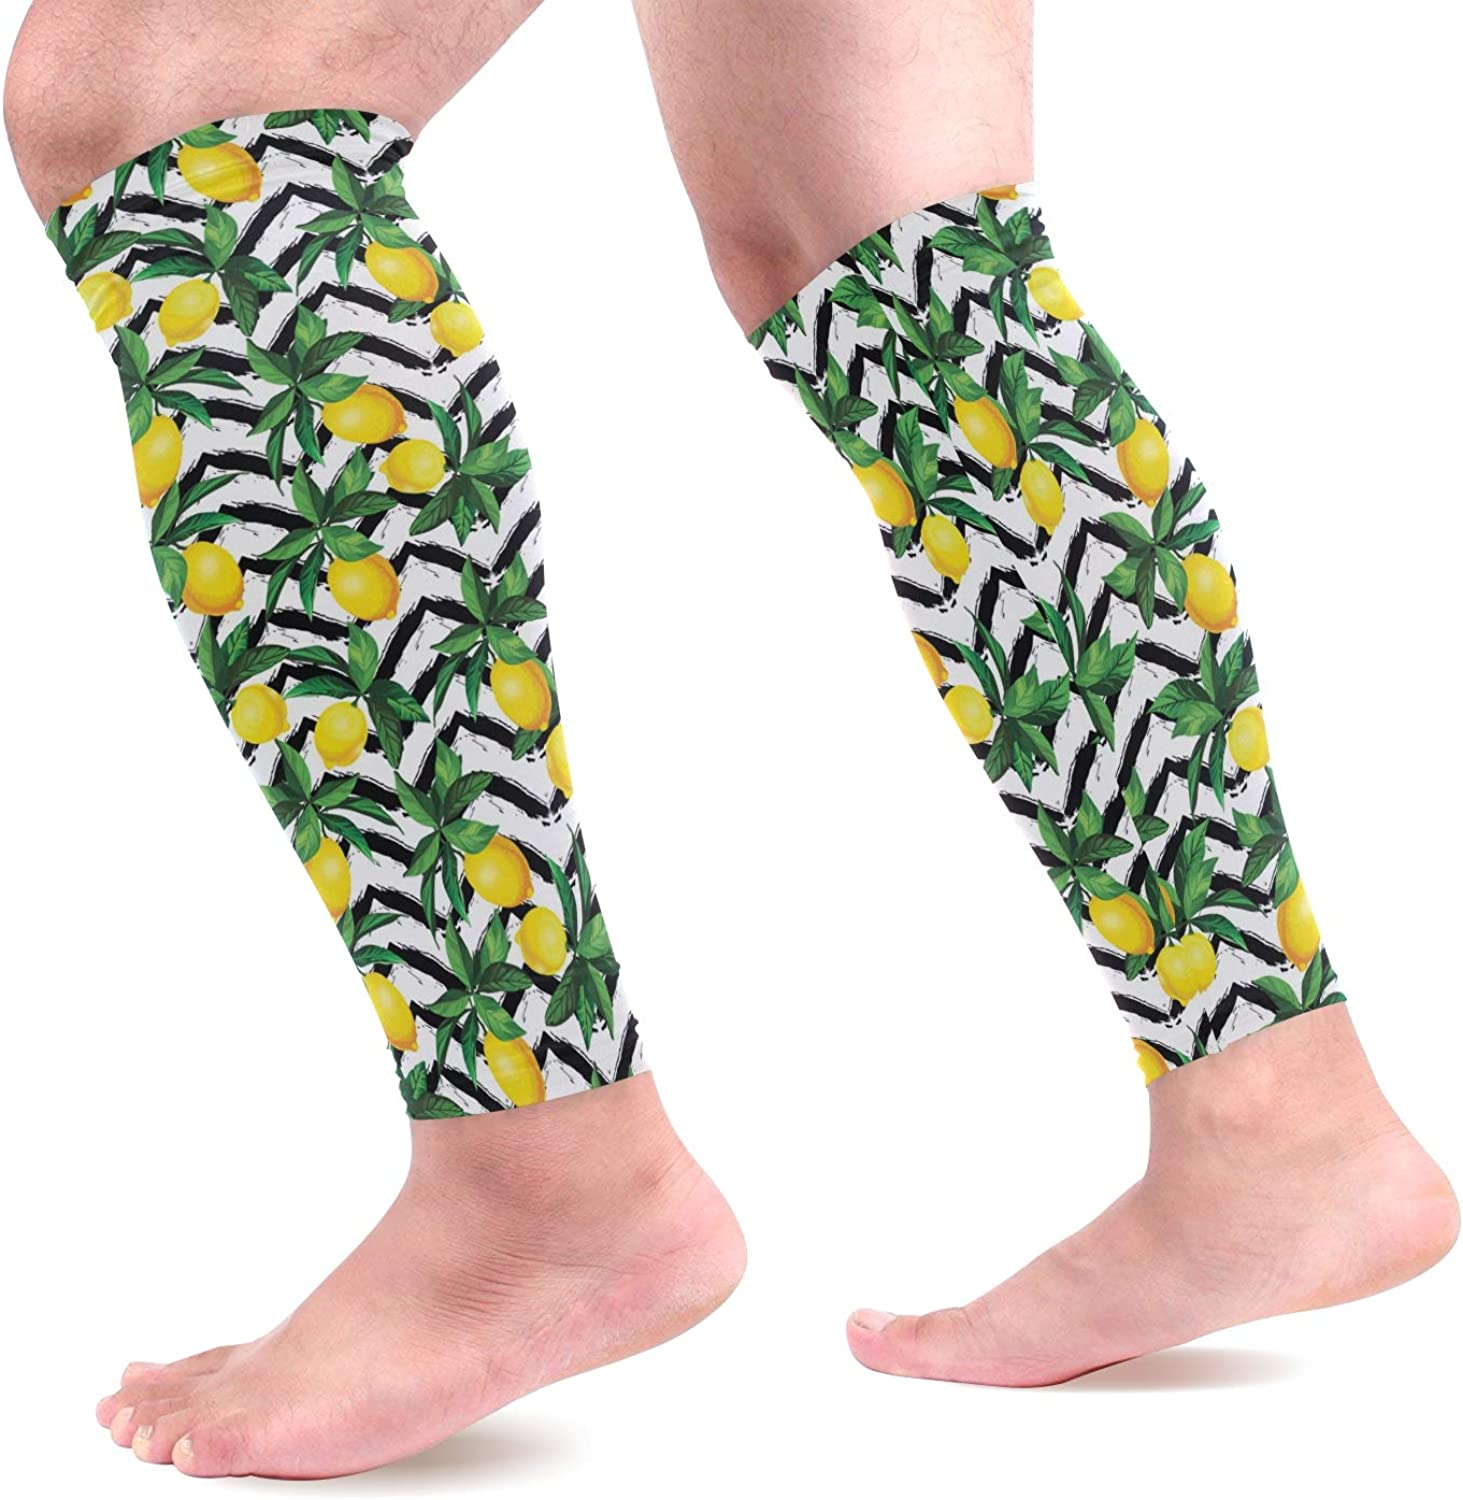 visesunny New Summer Creative Lemon Pattern Sports Calf Support Sleeves (1 Pair) for Muscle Pain Relief Improved Circulation Compression Effective Support for Running Jogging Workout